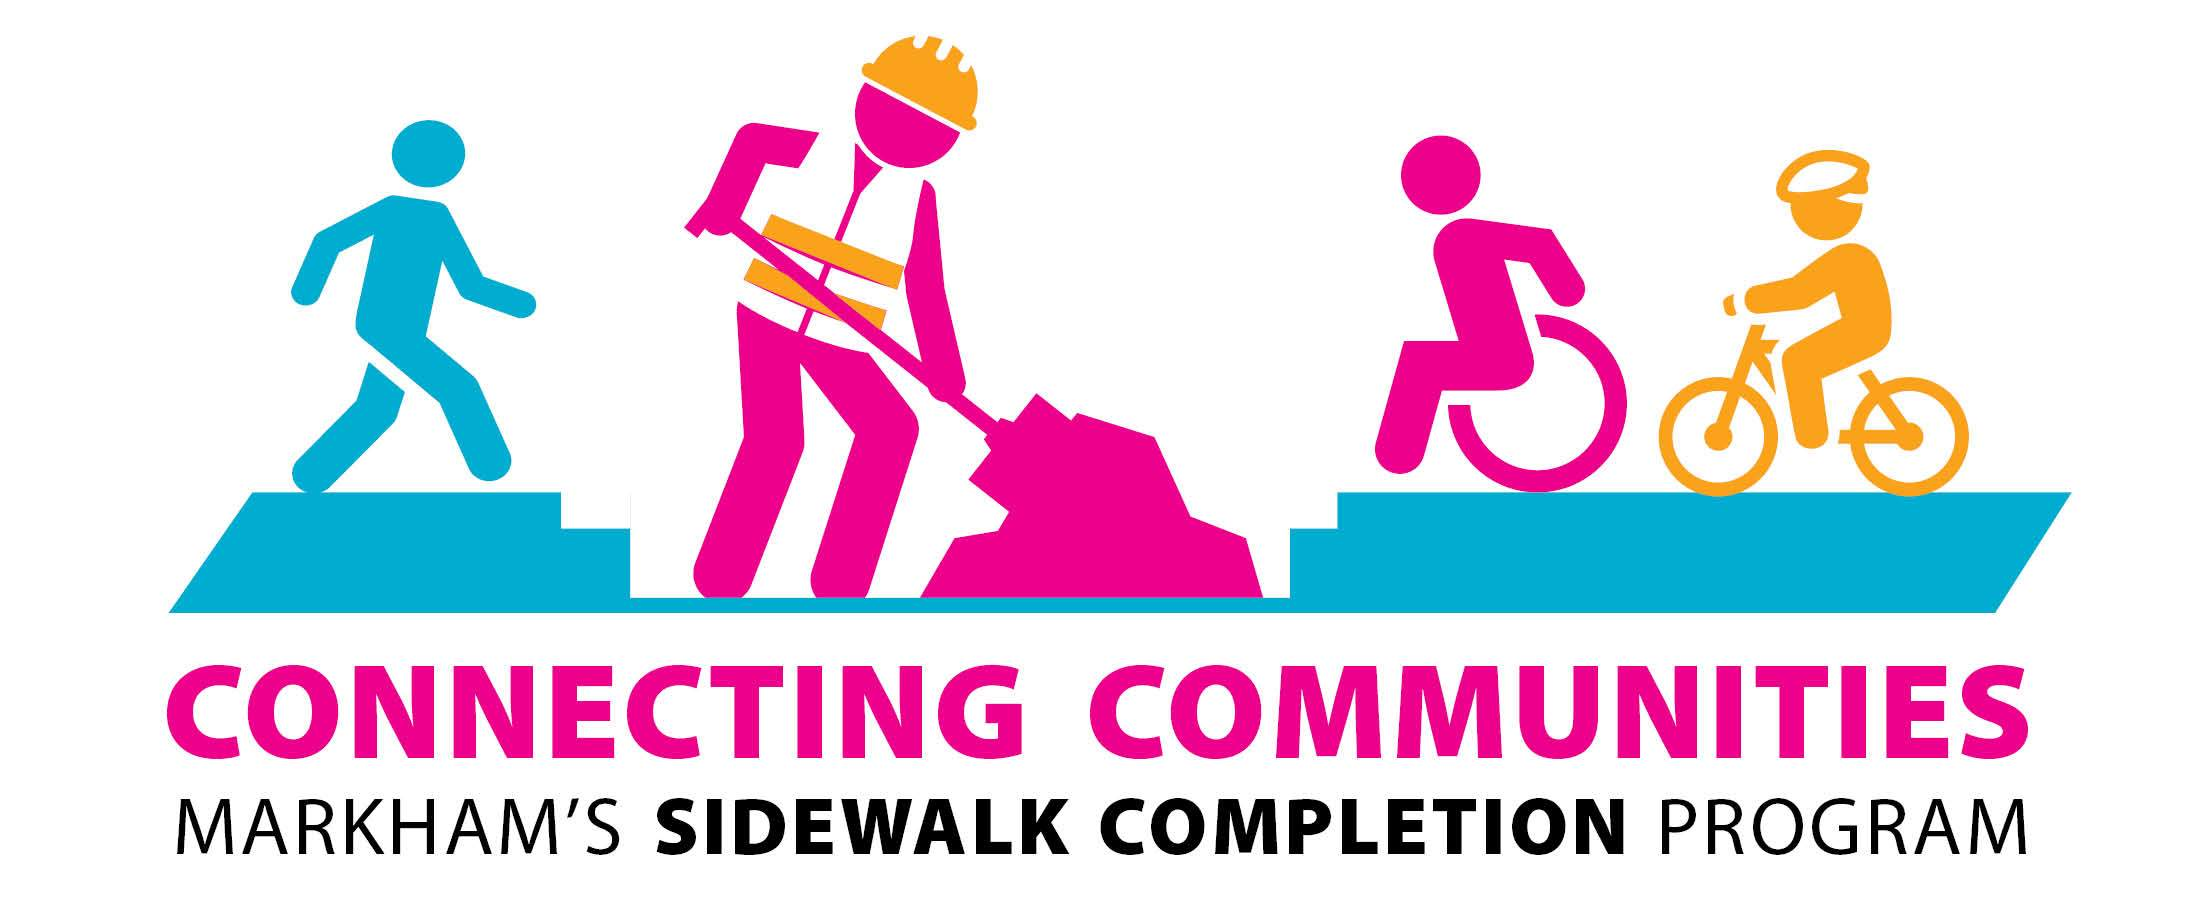 connecting communities sidewalk